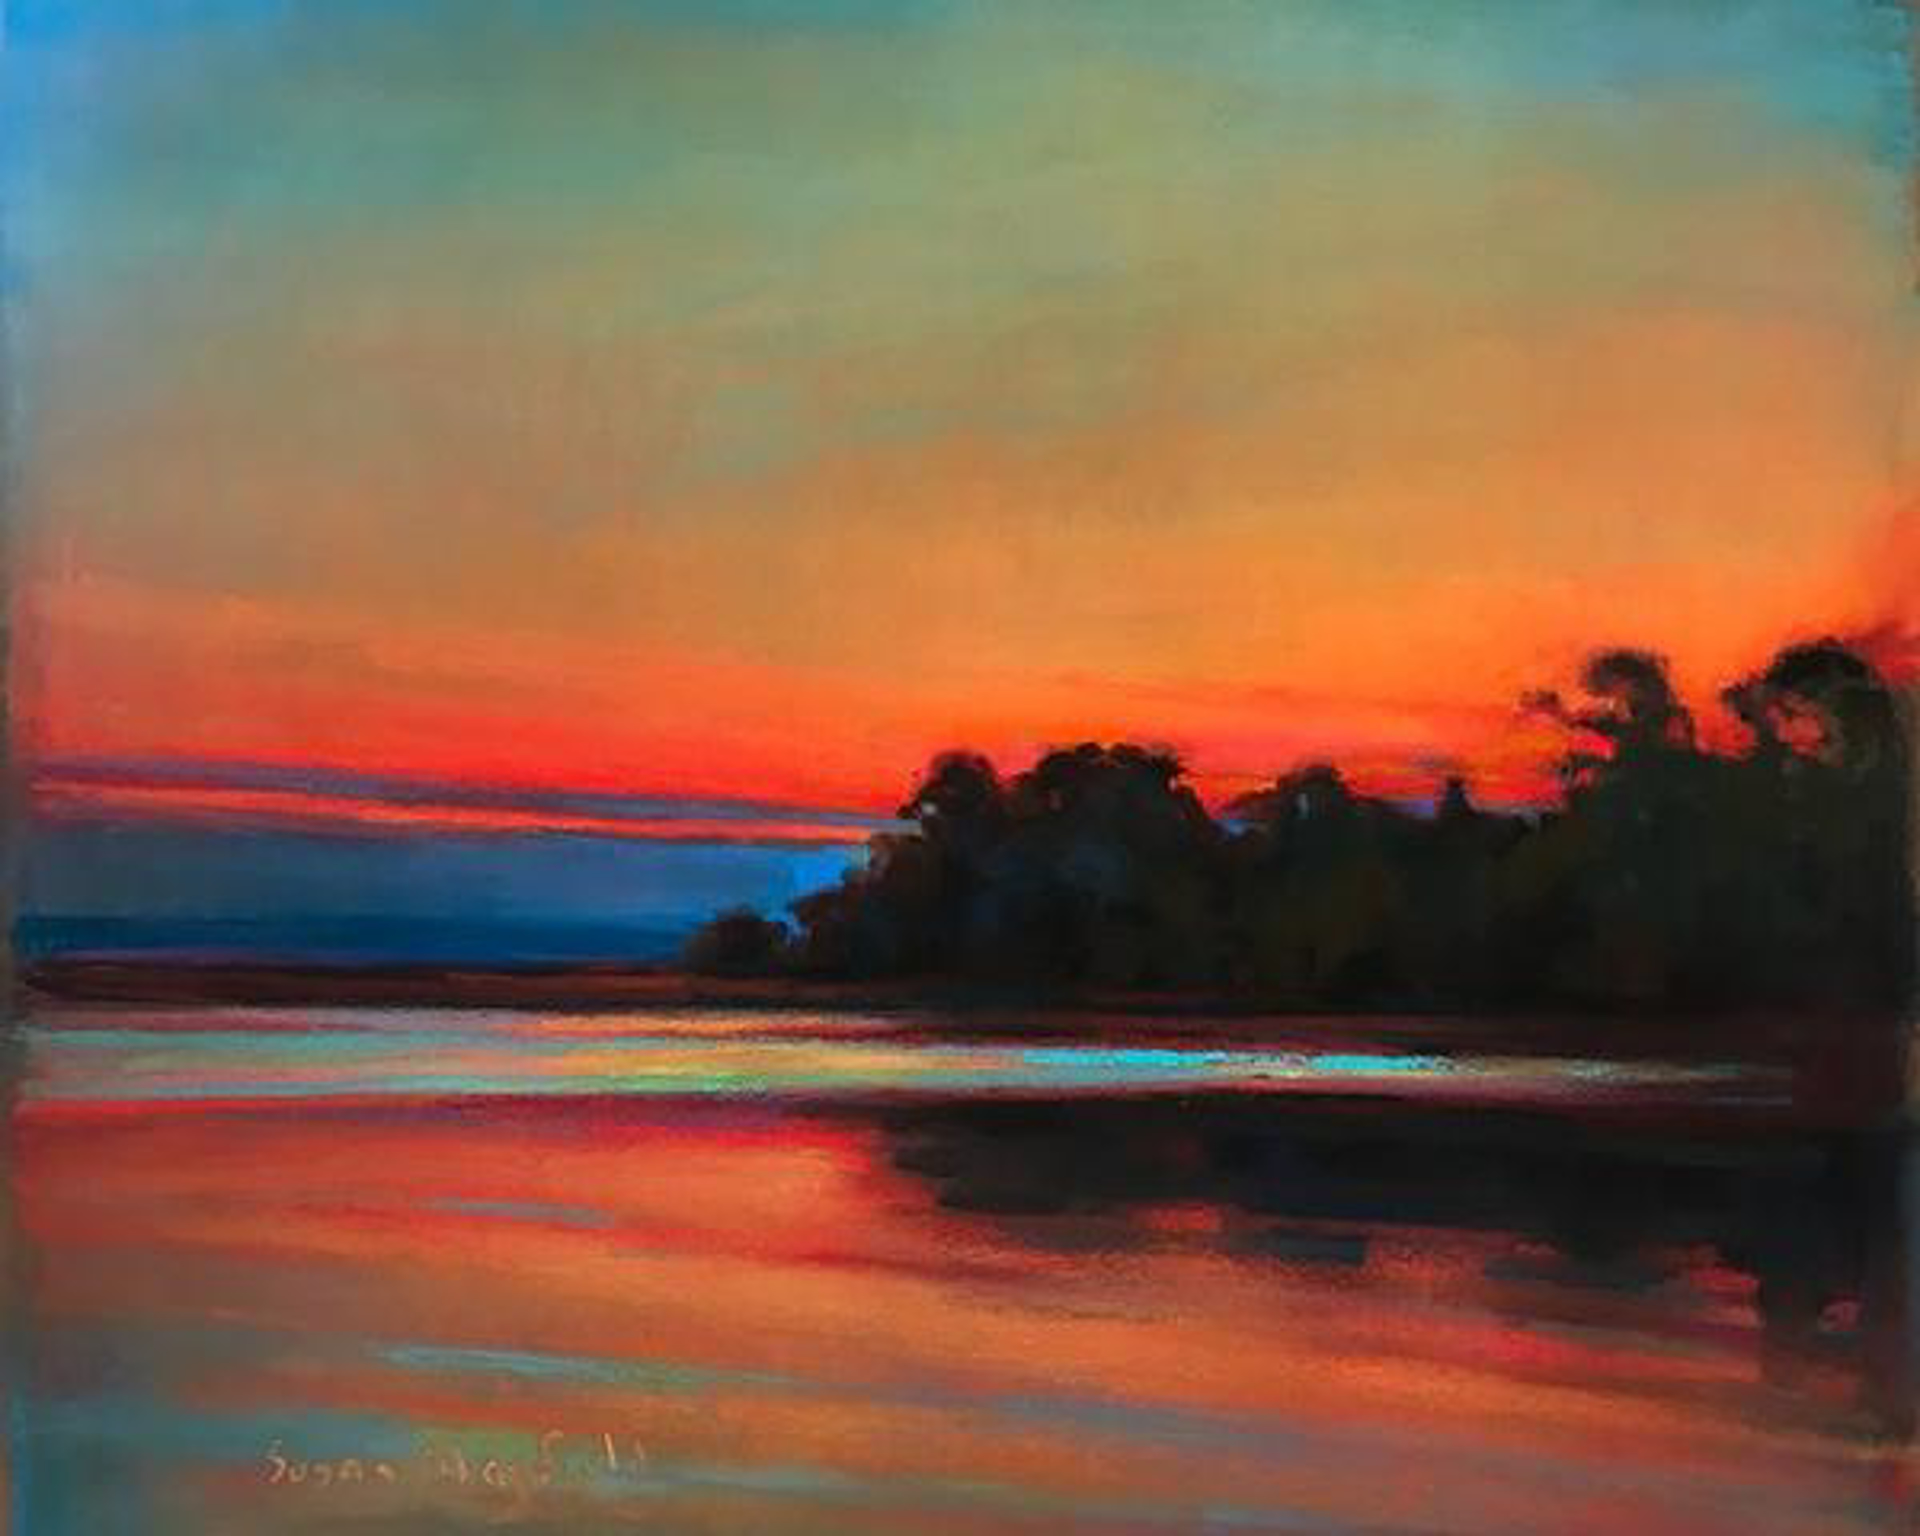 Red Sky Edisto by Susan Mayfield